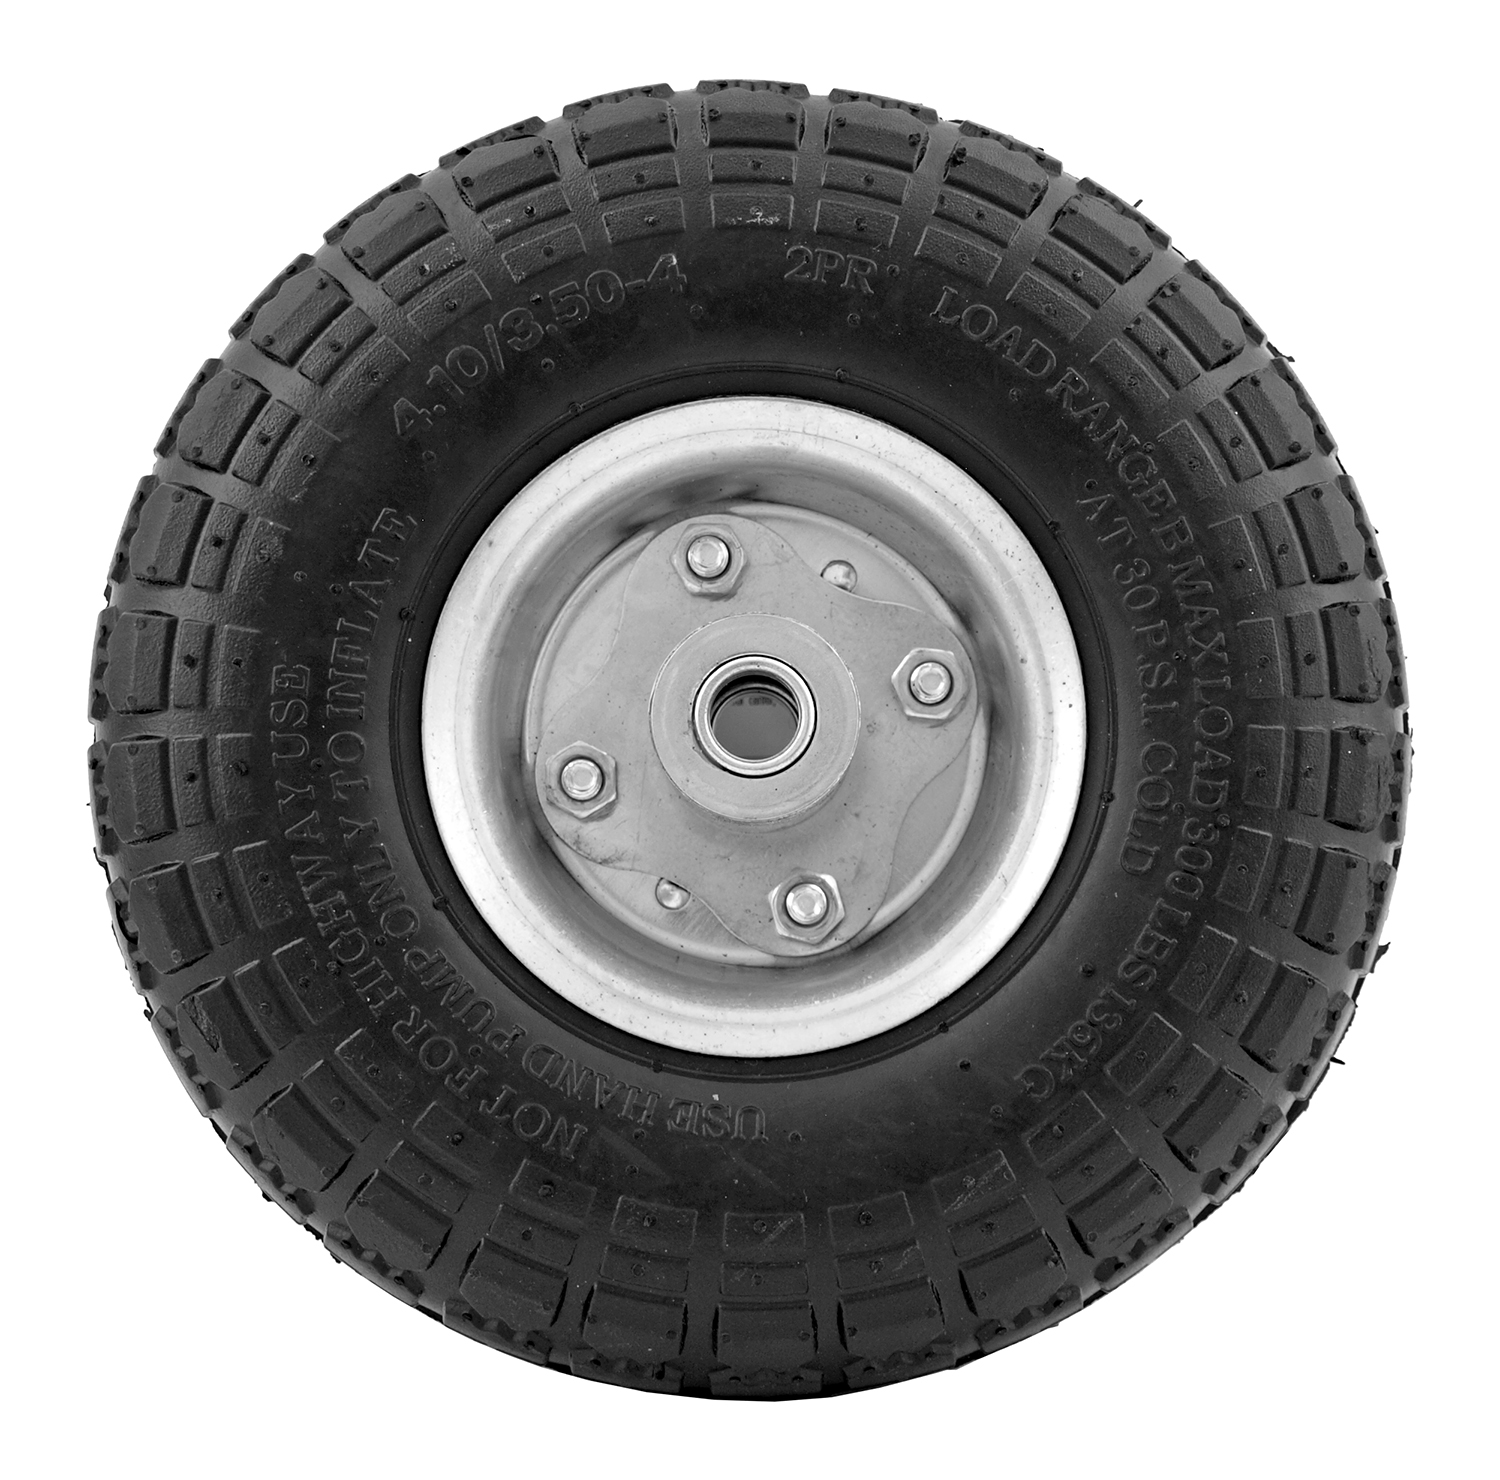 10 in Hand Truck Air Tire